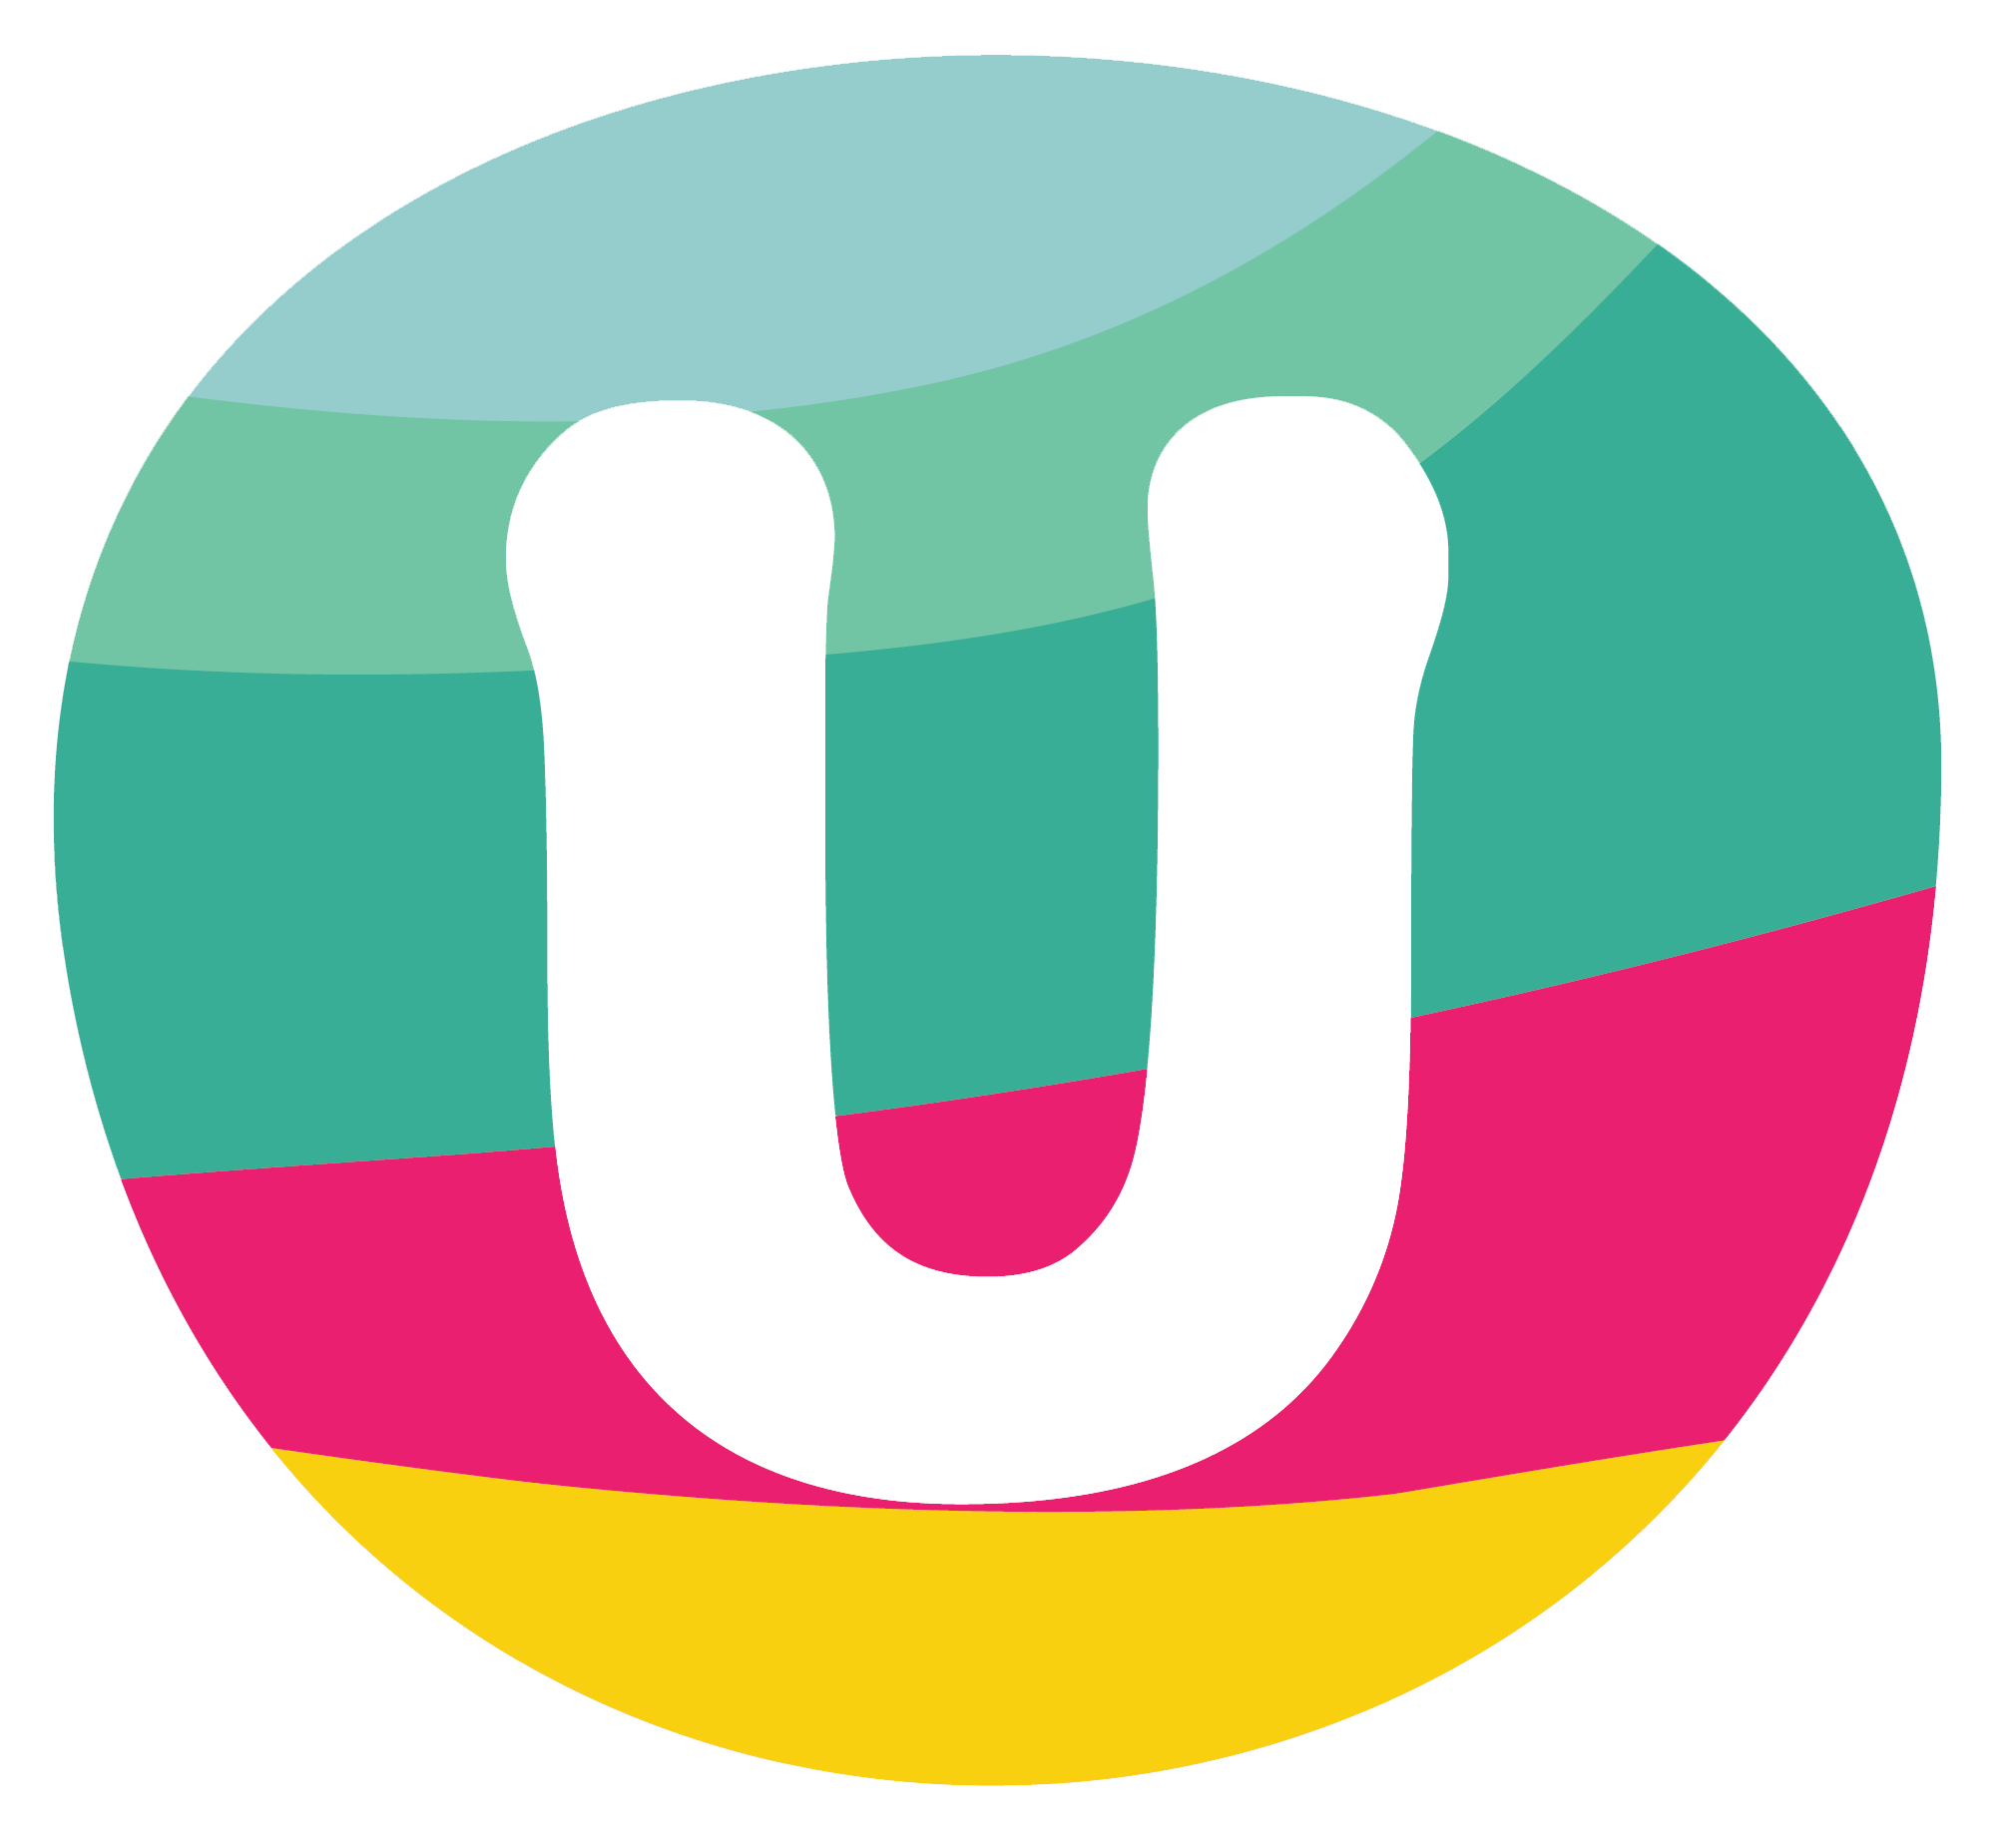 Unique-LOGO-ONLY-CMYK.png